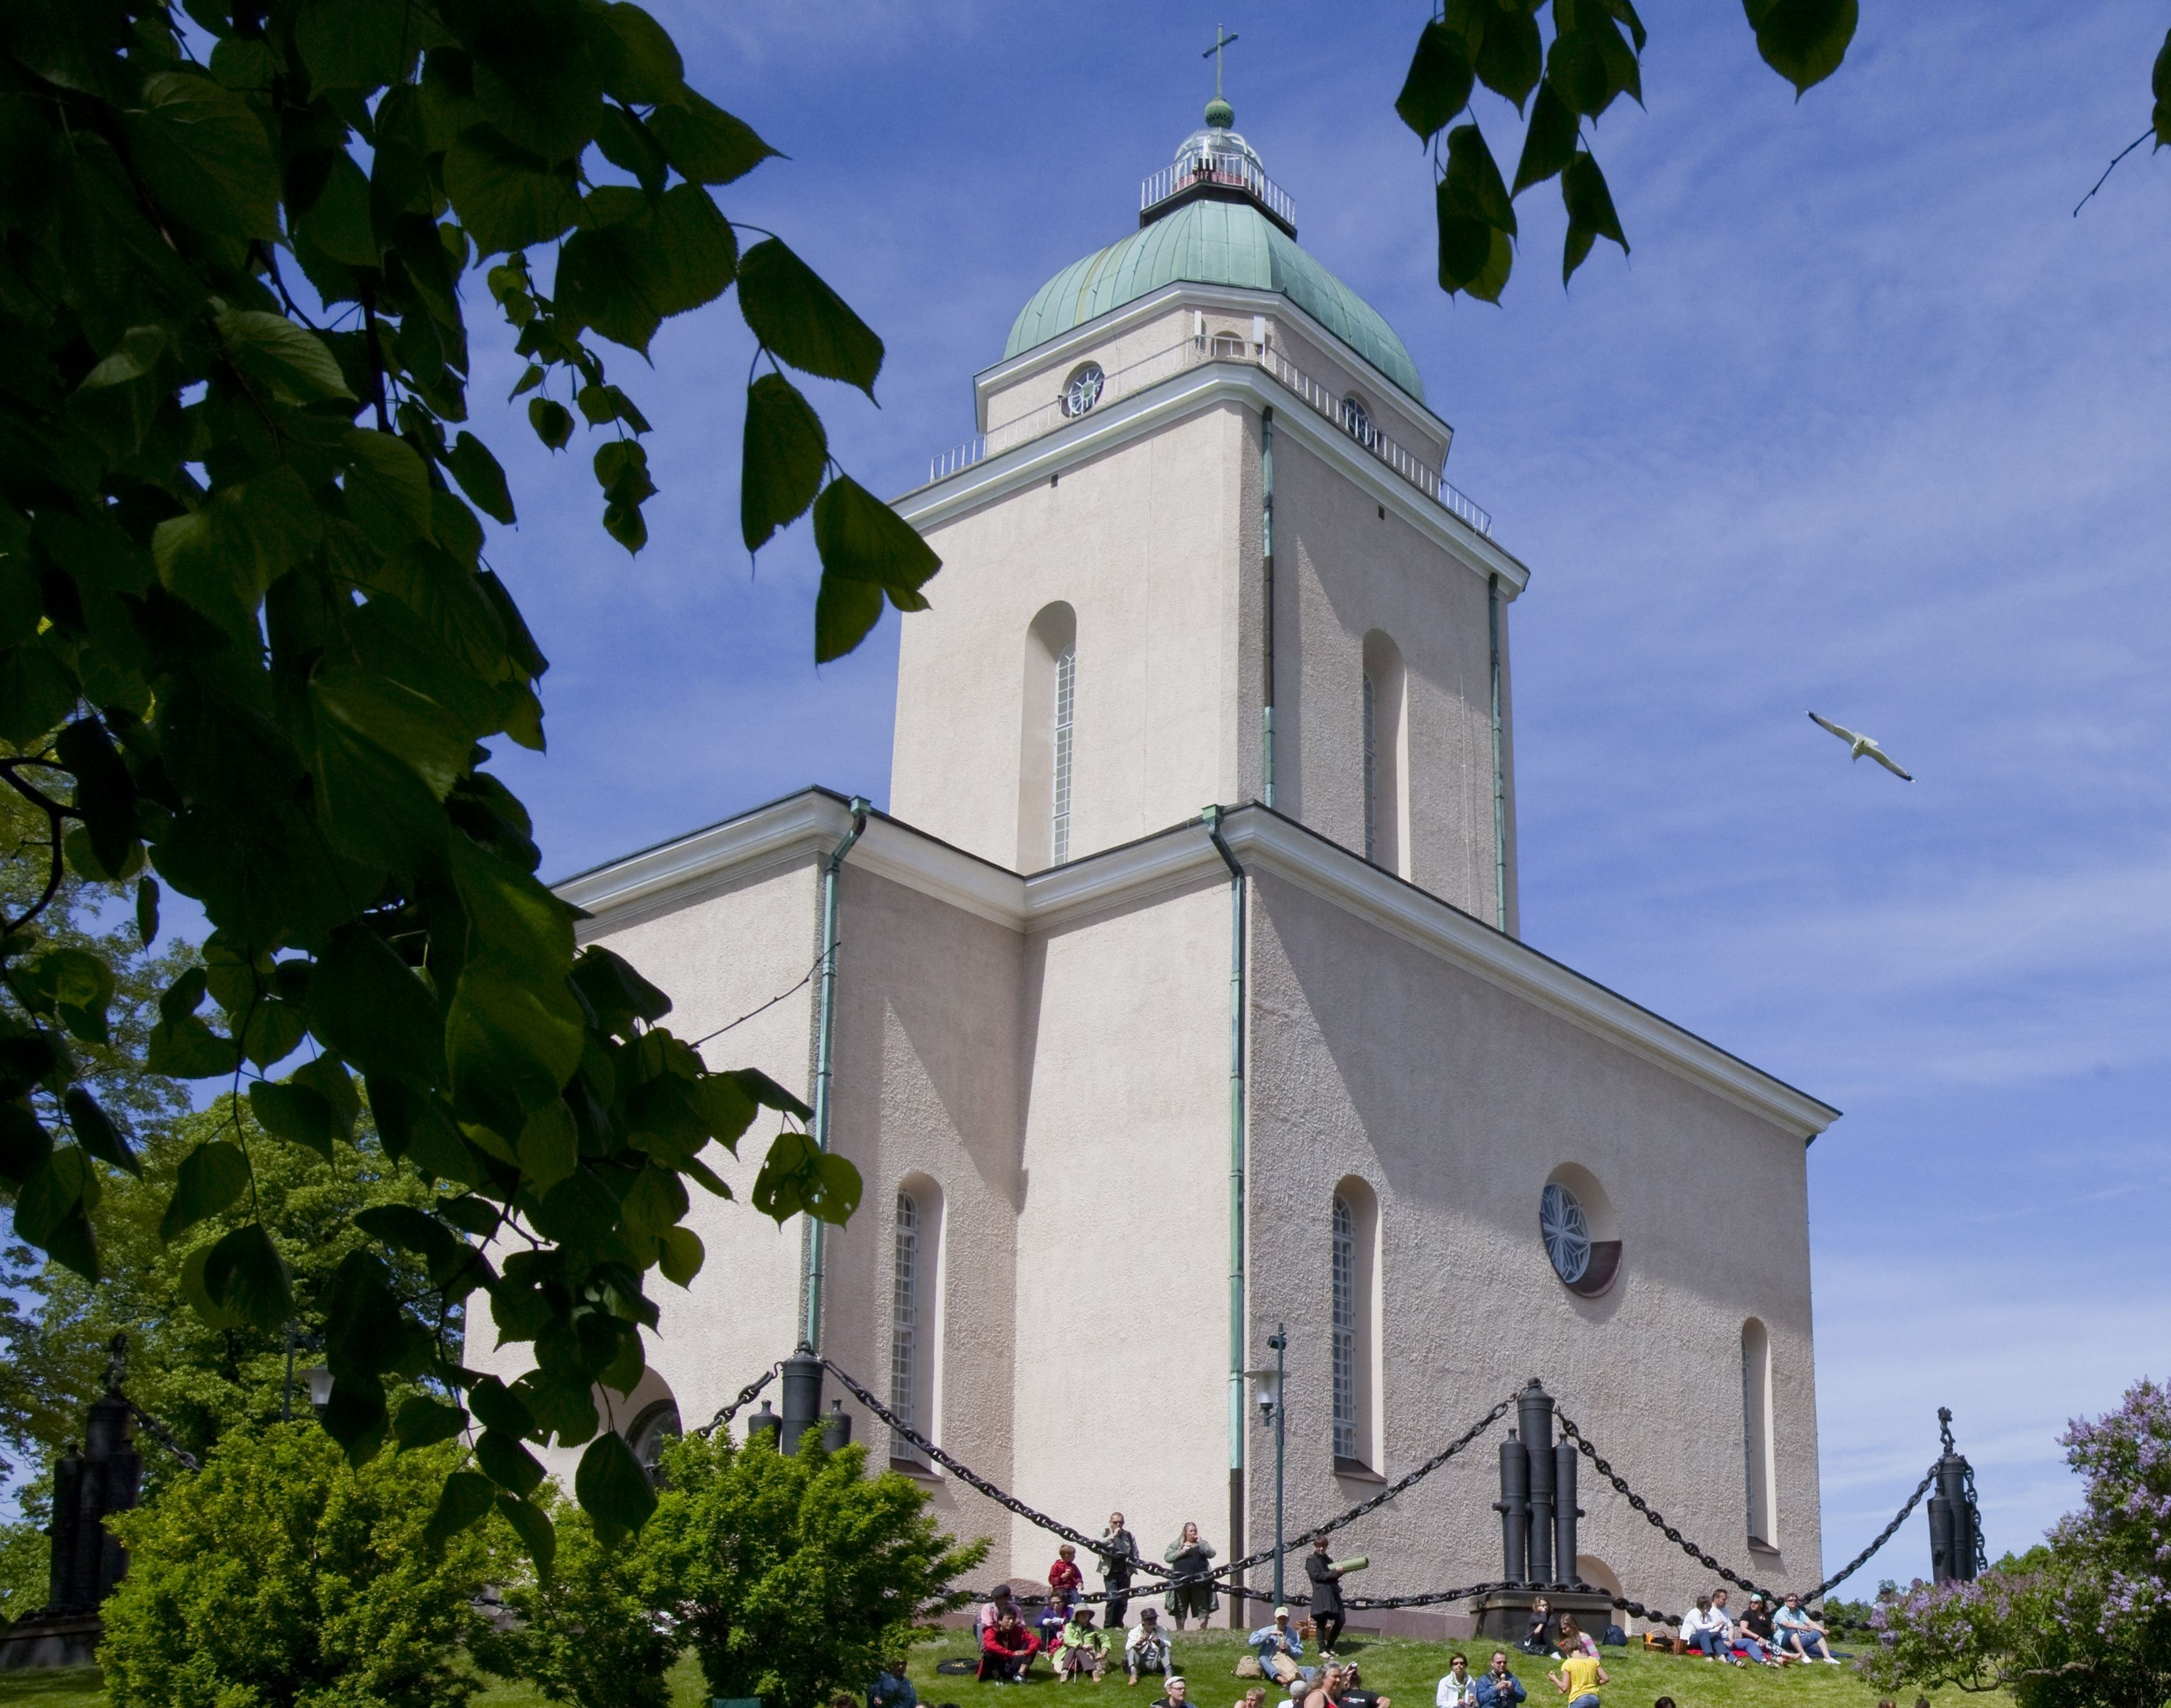 """The Suomenlinna Church was built as a Greek Orthodox garrison church for the Russian troops of Suomenlinna sea fortress in 1854 and originally had five onion domes. The church was designed by Konstantin Thon. The Orthodox church was converted into an Evangelical Lutheran church during the 1920s. Today its central dome doubles as a lighthouse,  the signal blink is the Morse code for the letter """"H"""" for Helsinki."""